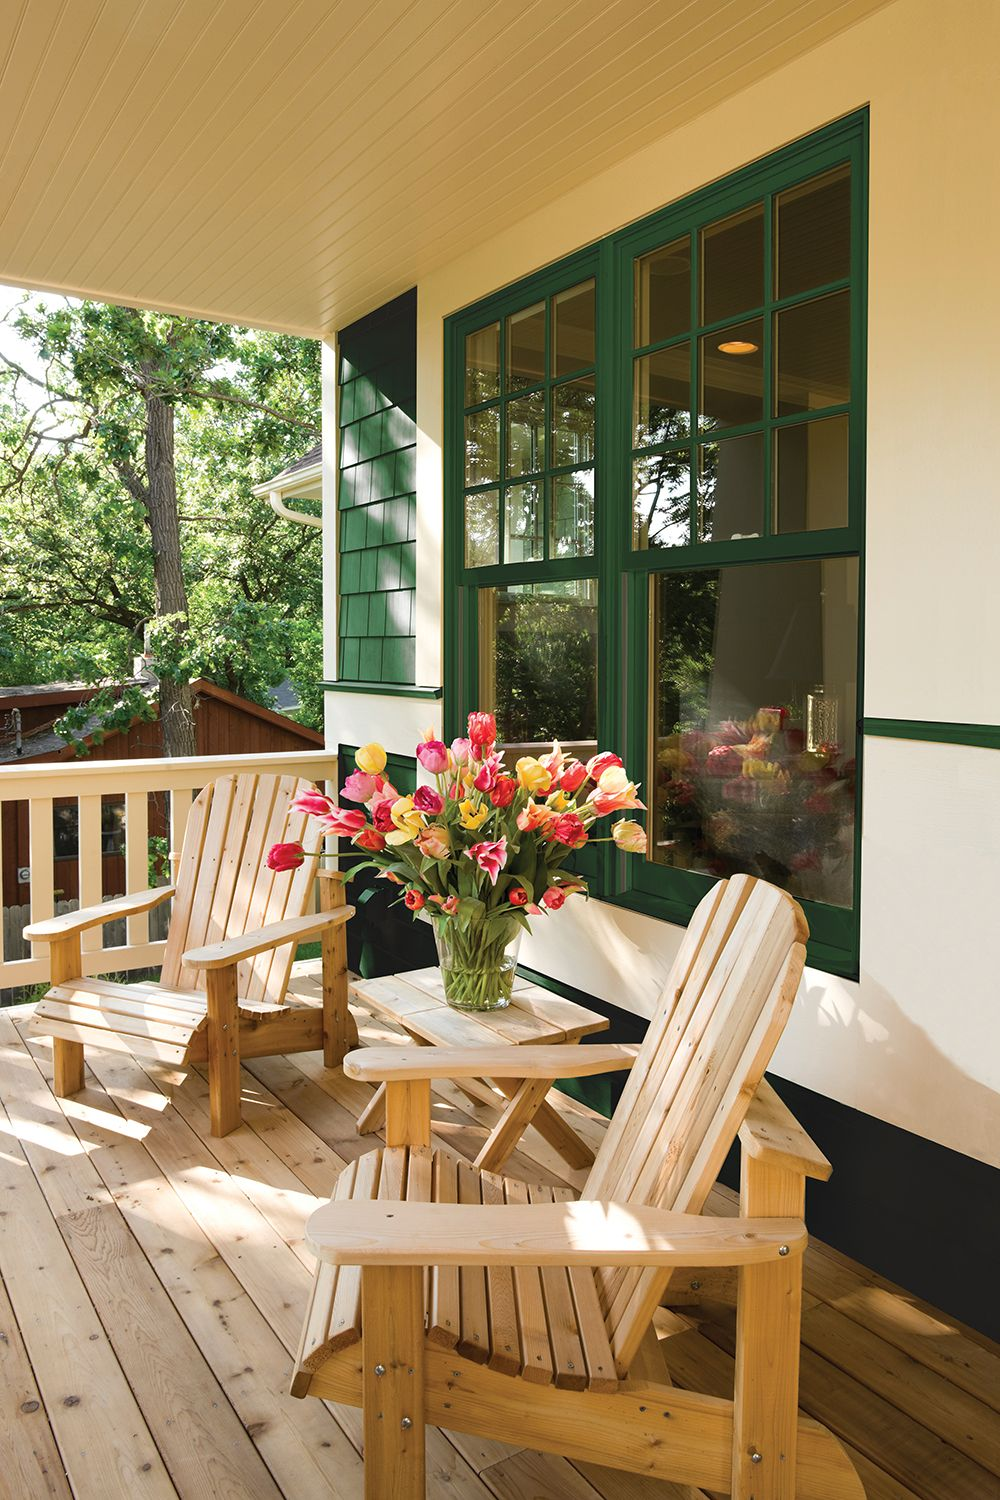 Wooden Deck, Green Painted Patio, Porch design, House